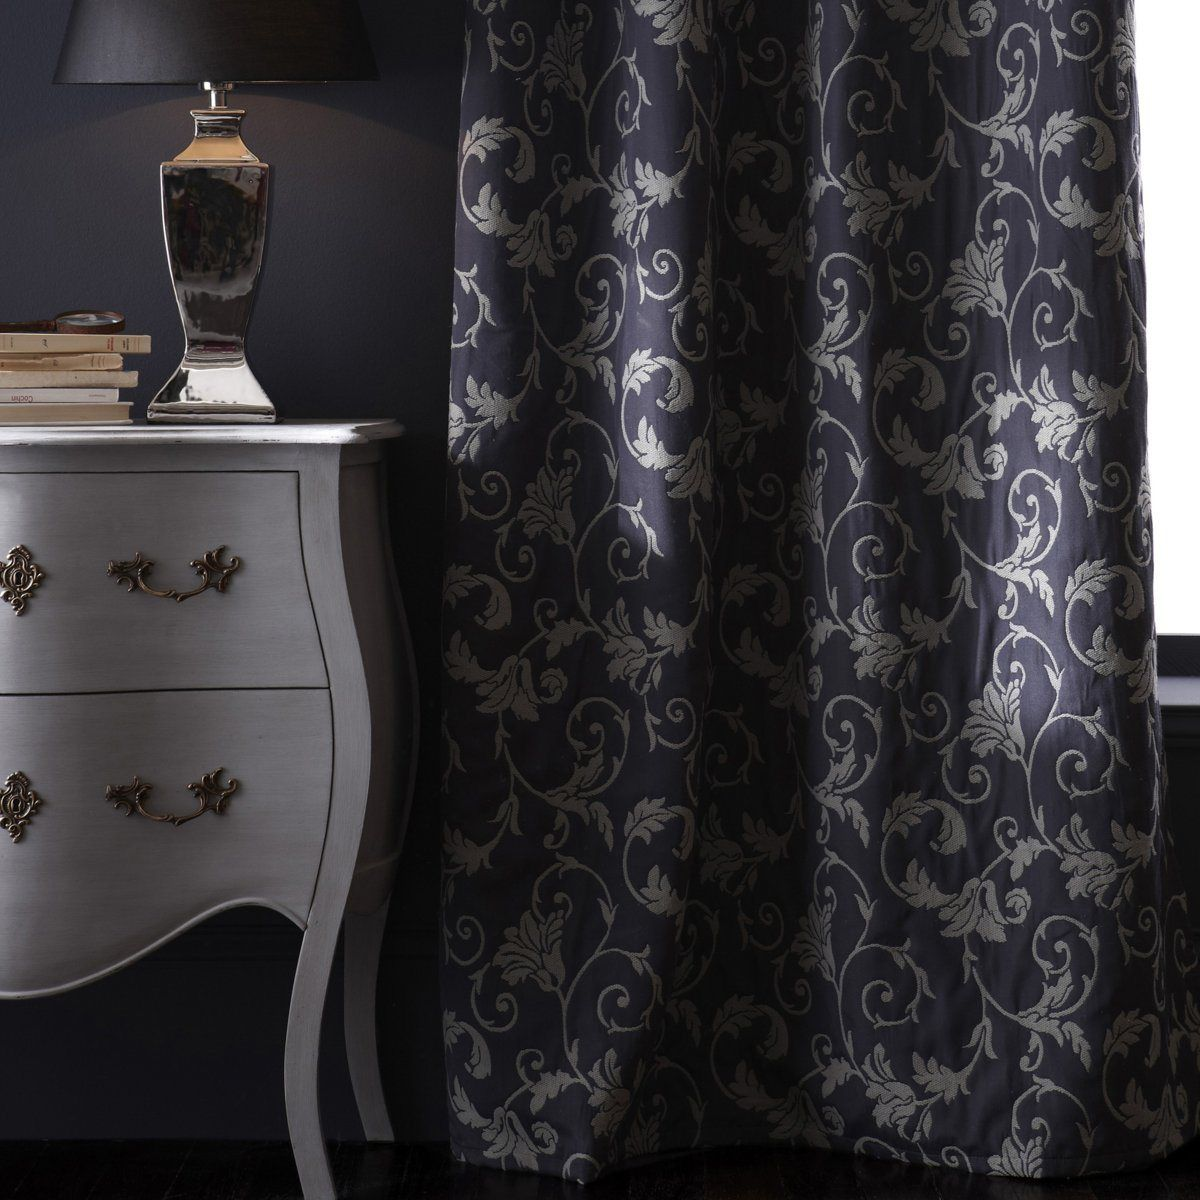 rideaux baroque baroque curtains baroque moderne. Black Bedroom Furniture Sets. Home Design Ideas